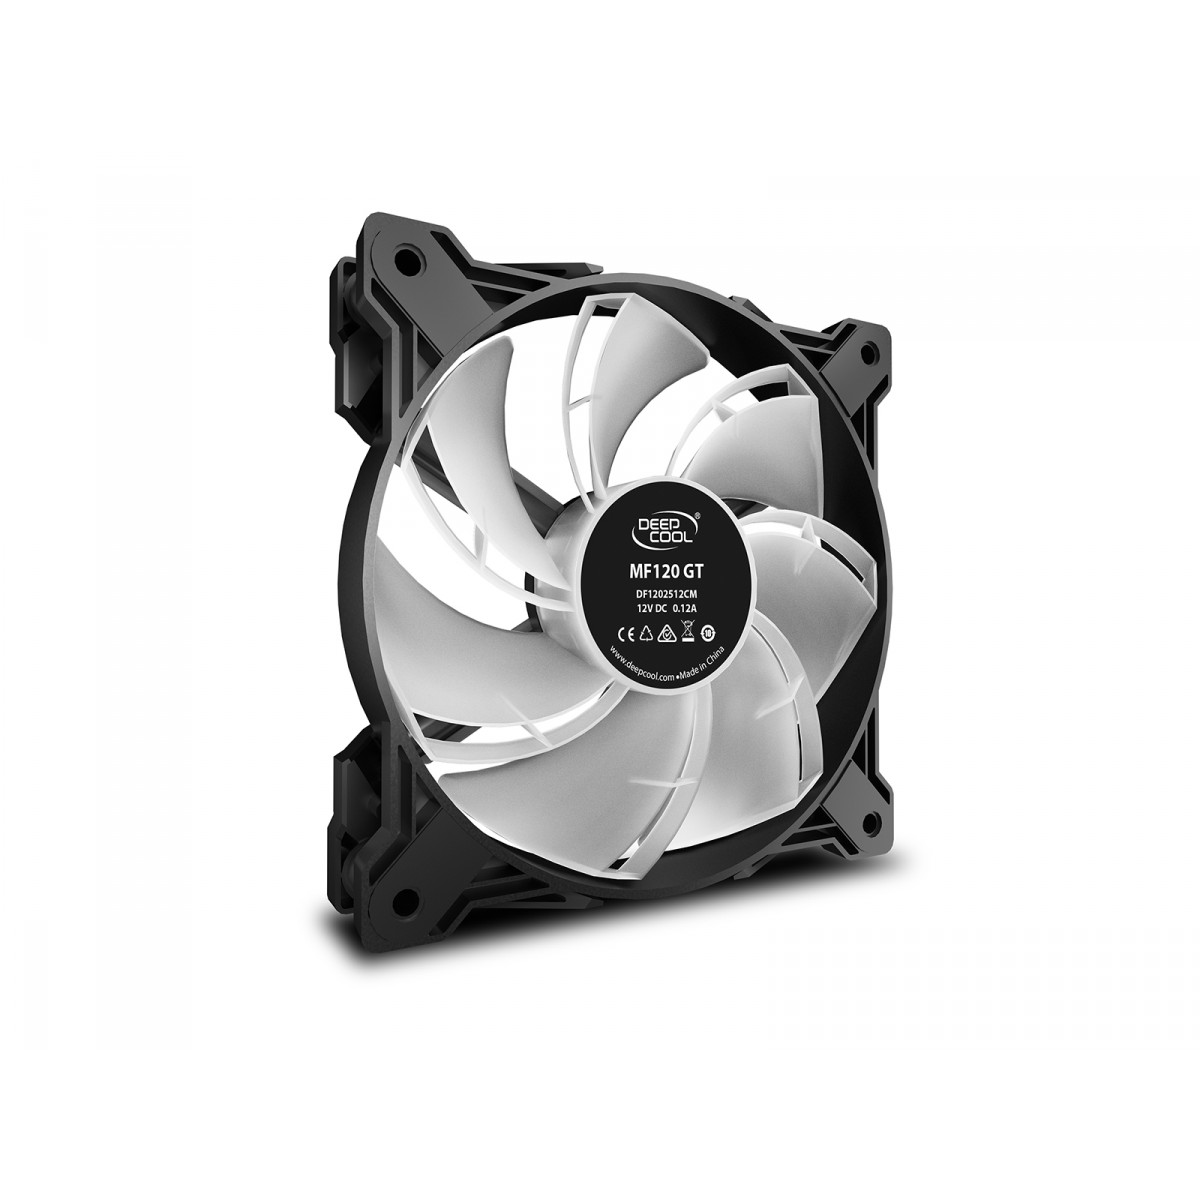 Kit Fan com 3 Unidades DeepCool, ADD-RGB 120mm, MF120 GT First Class, DP-GS-F12-AR-MF120GT-3P